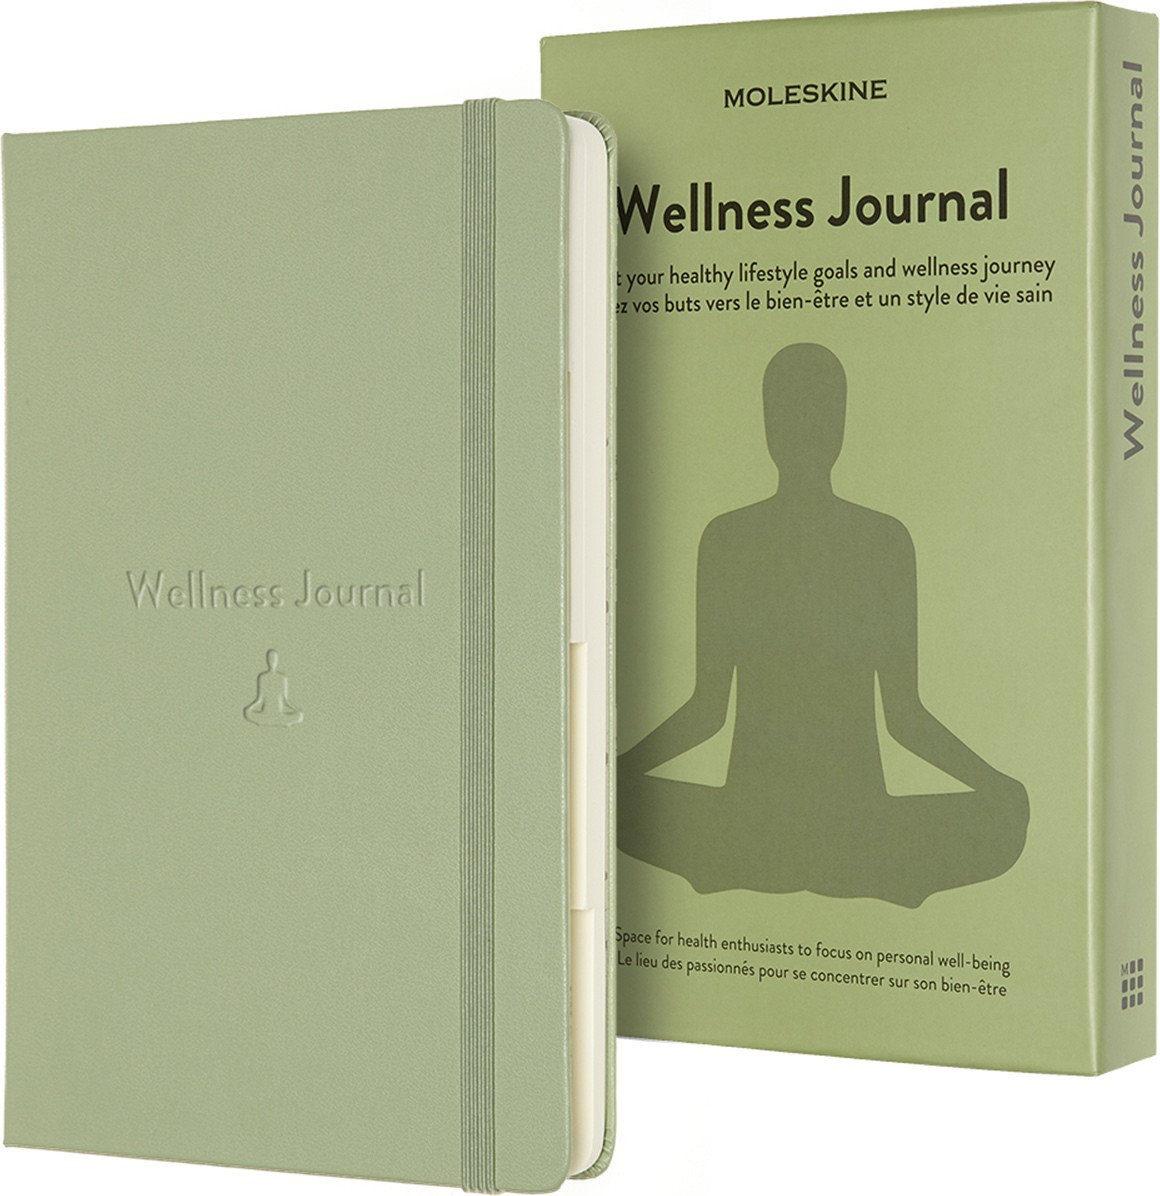 Moleskine Passion Journal Box: WELLNESS